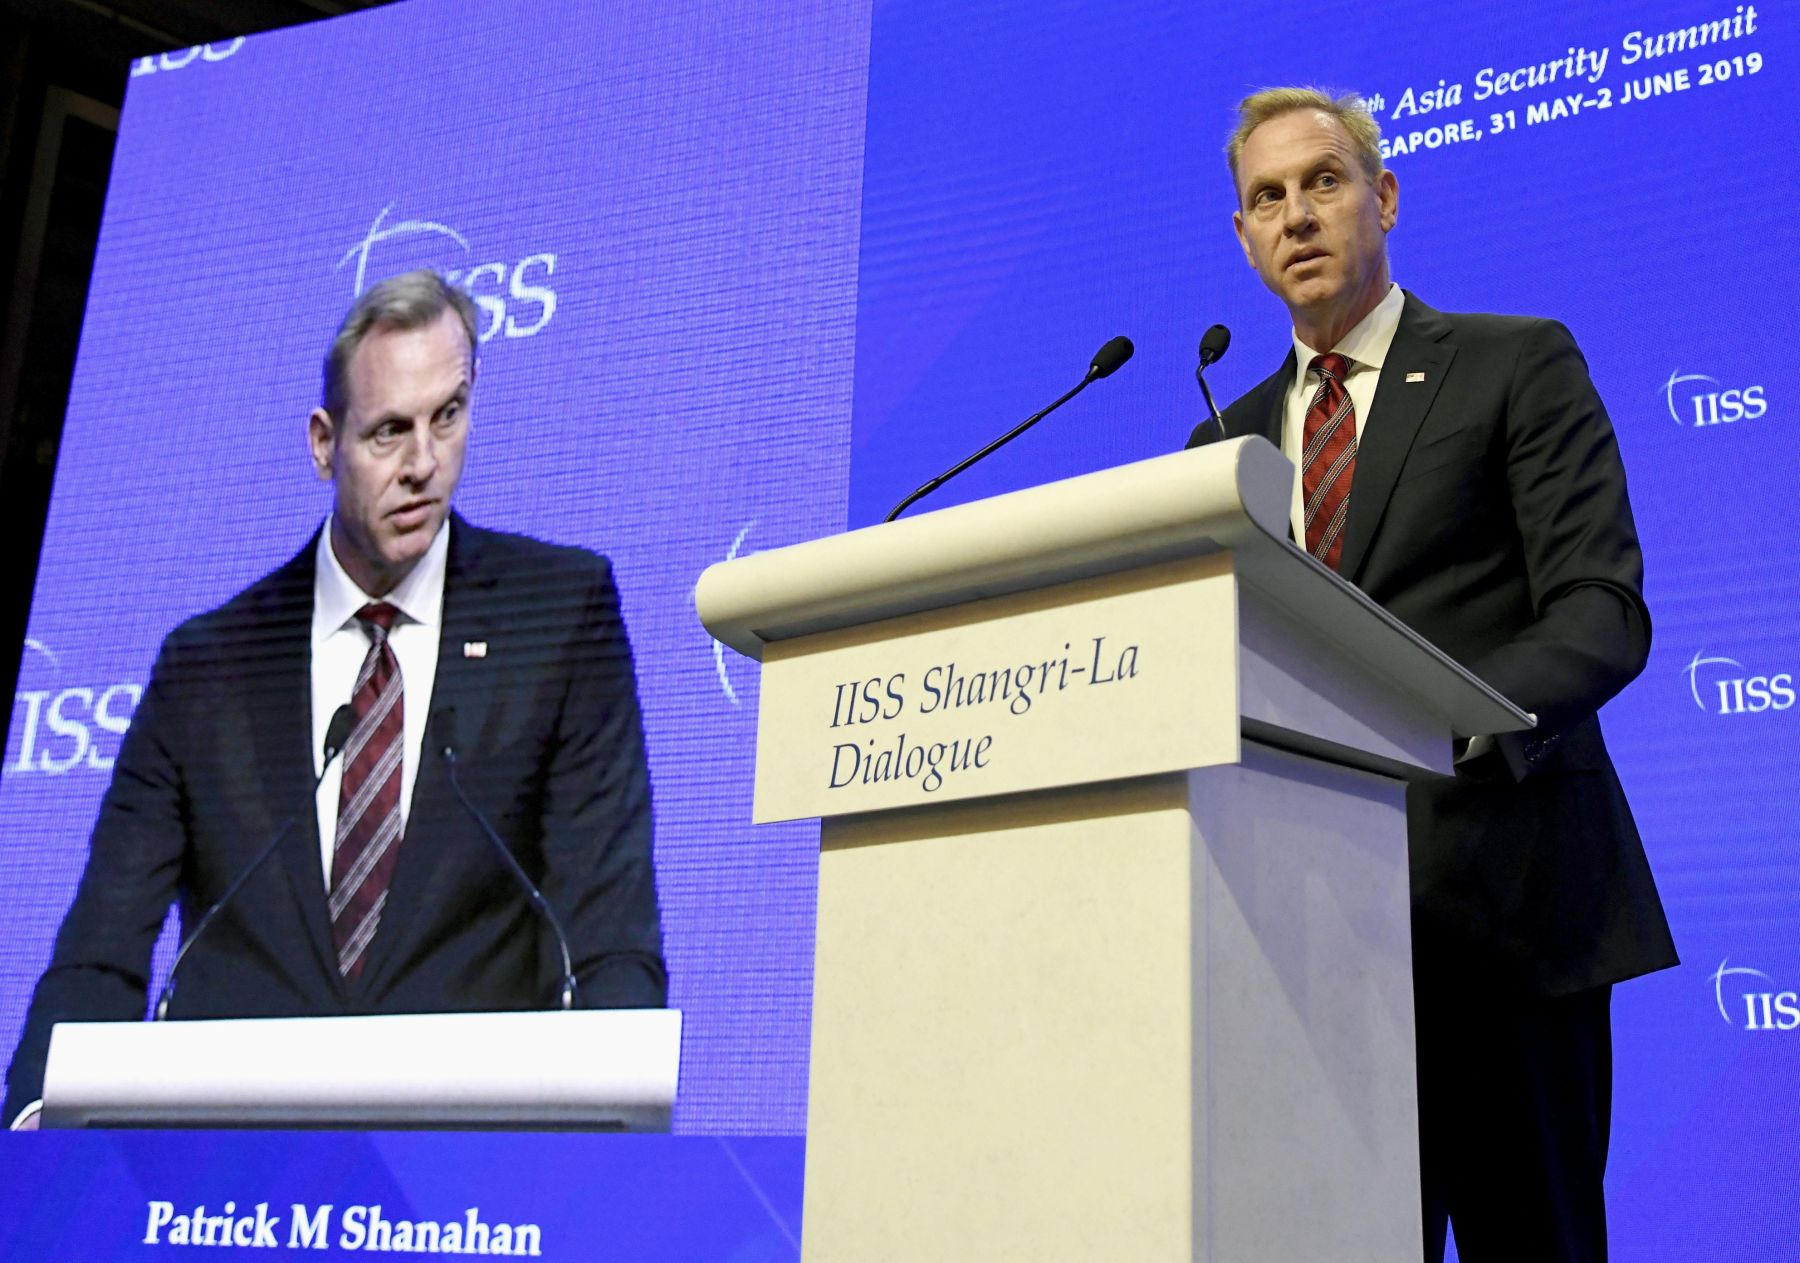 Patrick Shanahan announced the US Indo-Pacific Strategy at Singapore 002